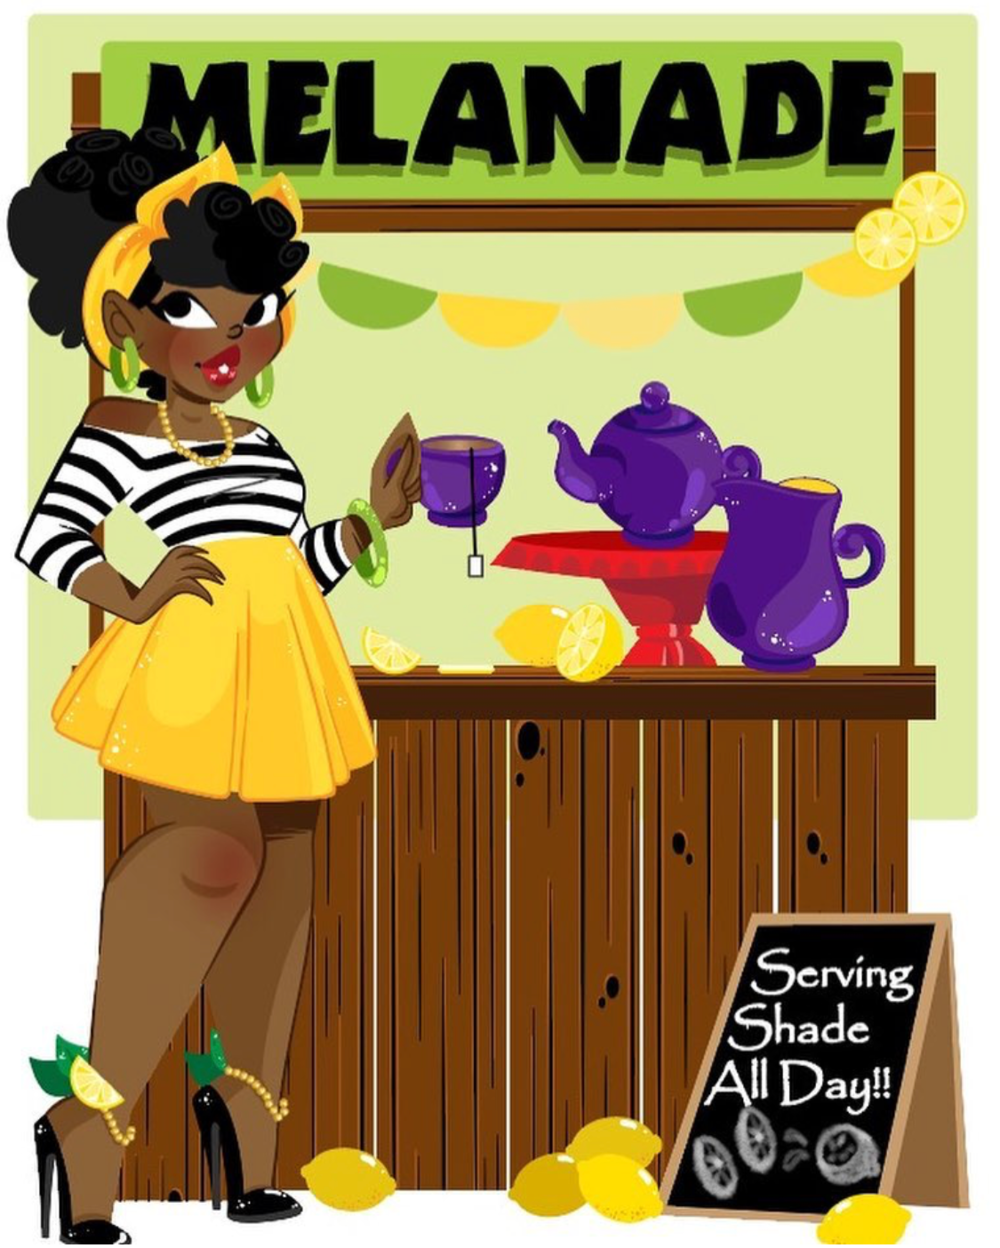 The MELANADE STAND